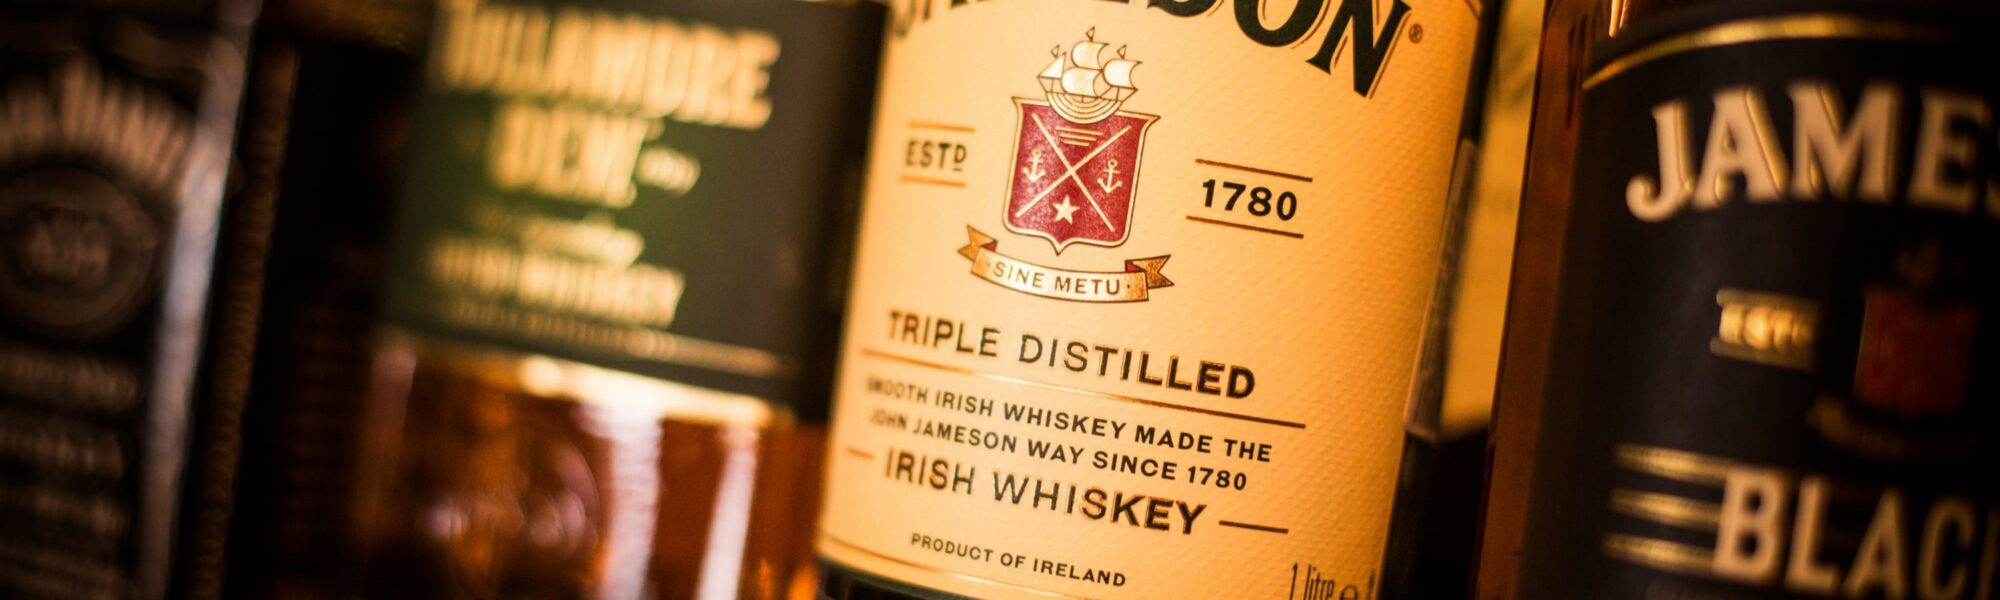 Du whiskey Jameson - © bizoo_n - stock.adobe.com